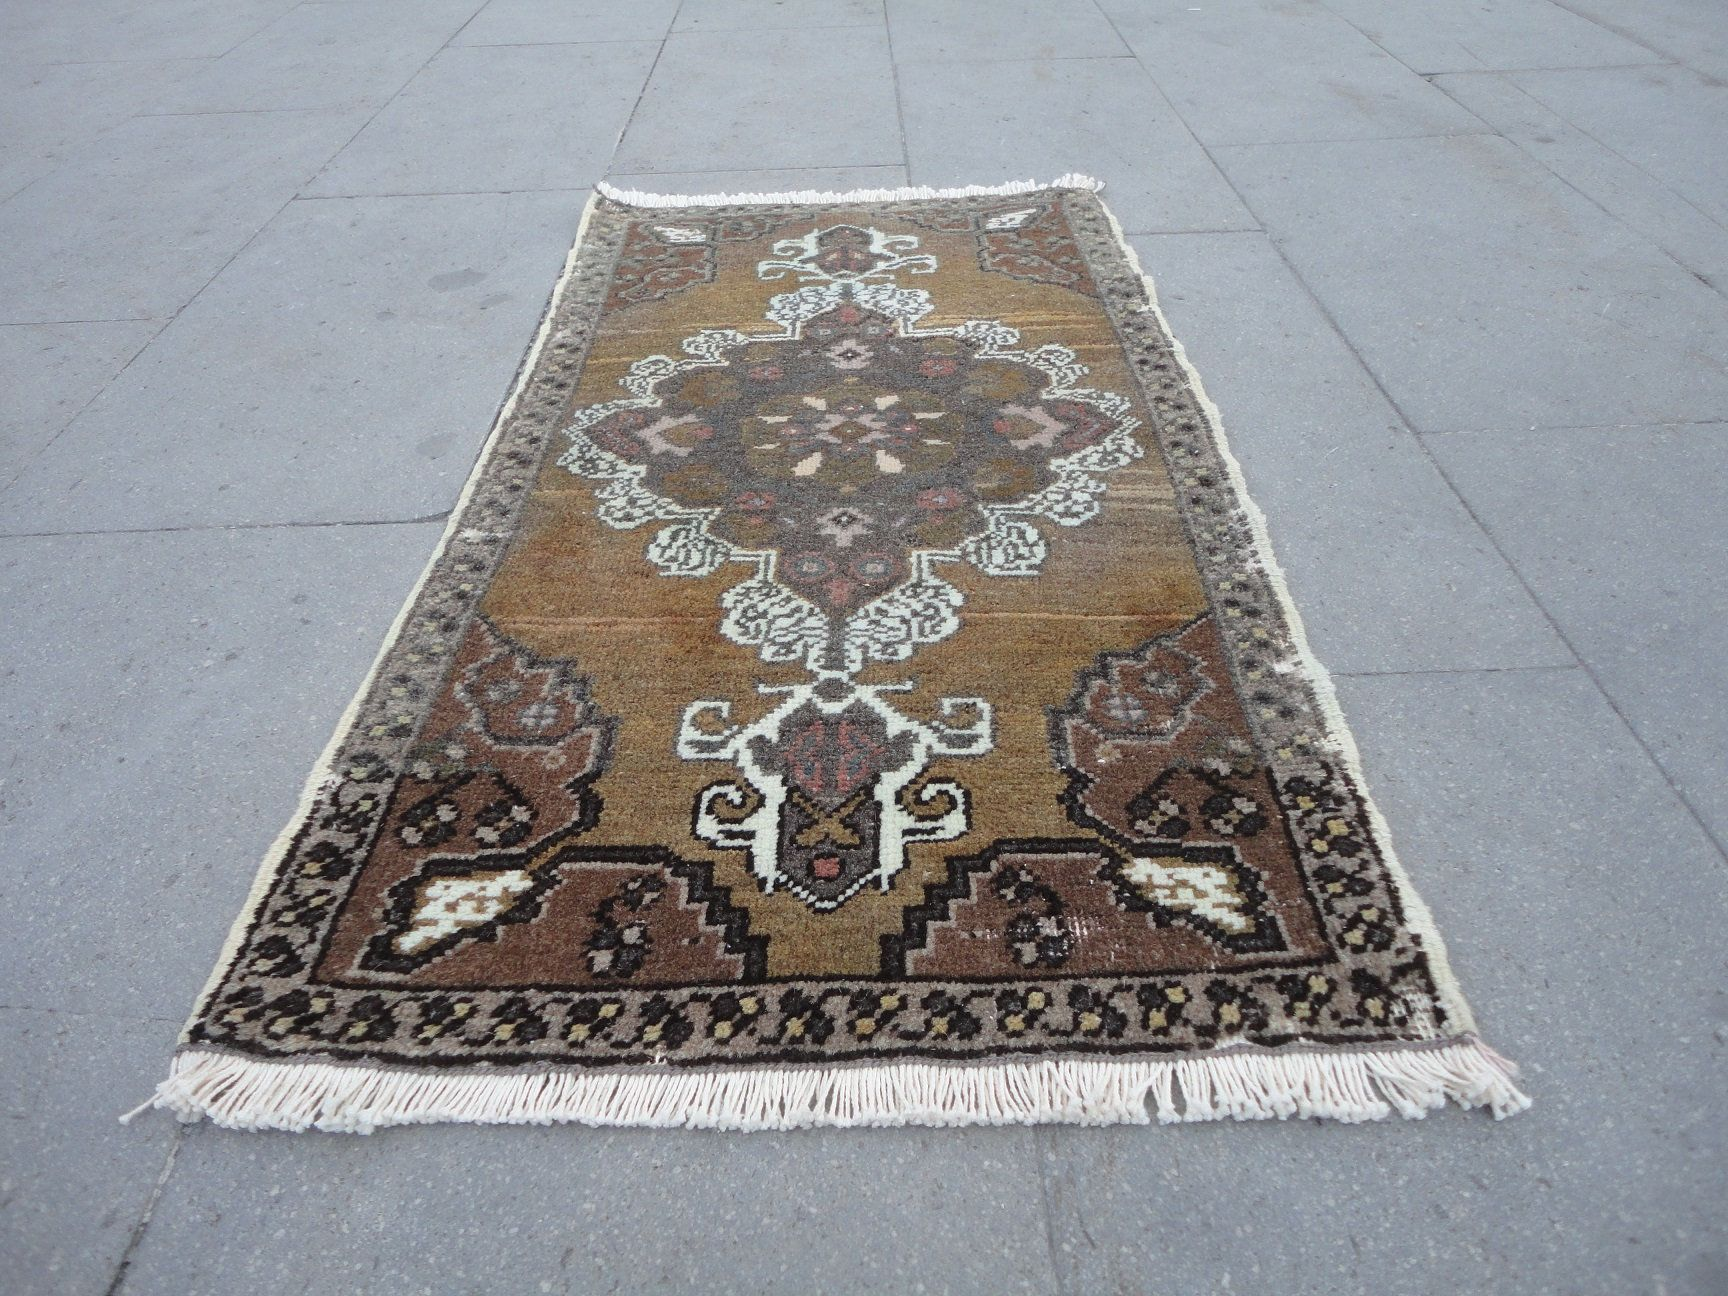 Door Mat Pale Turkish Rug Hand Knotted Small Rug Entryway Gift Carpet 86 X 48 Cm 3 X 1 6 Feet Vintage Rug Low Pile Rug Bathroom Rug